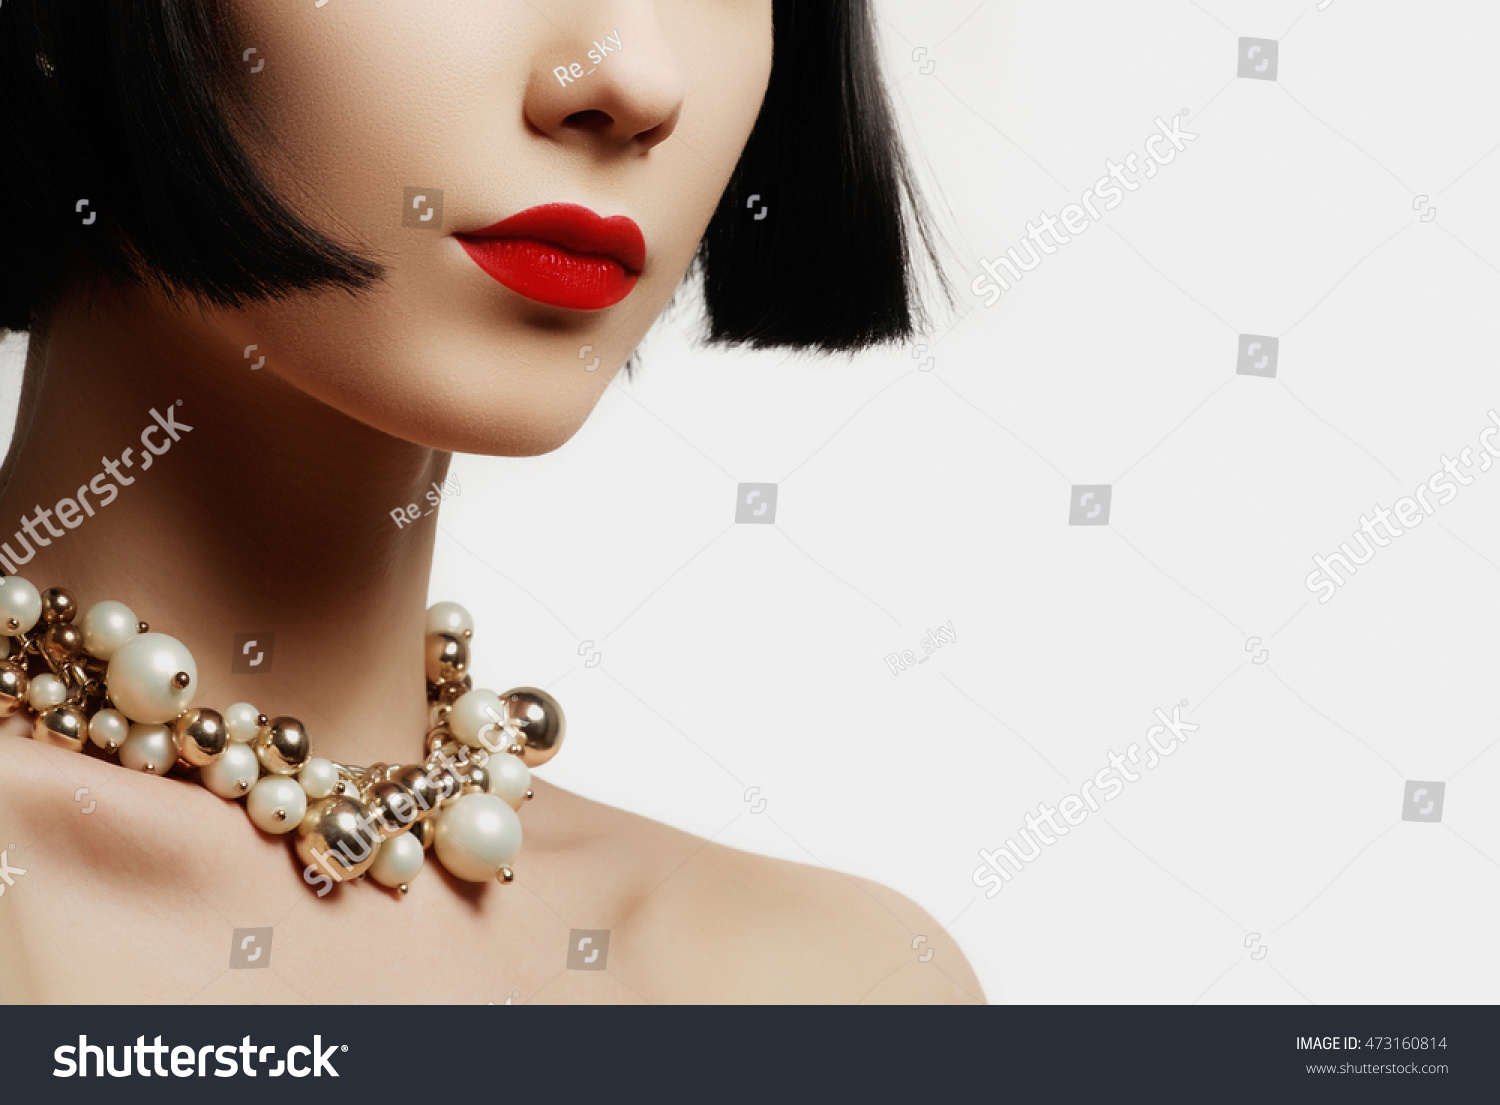 woman voronin in and stock photo depositphotos up earrings close of expensive by pendant beautiful